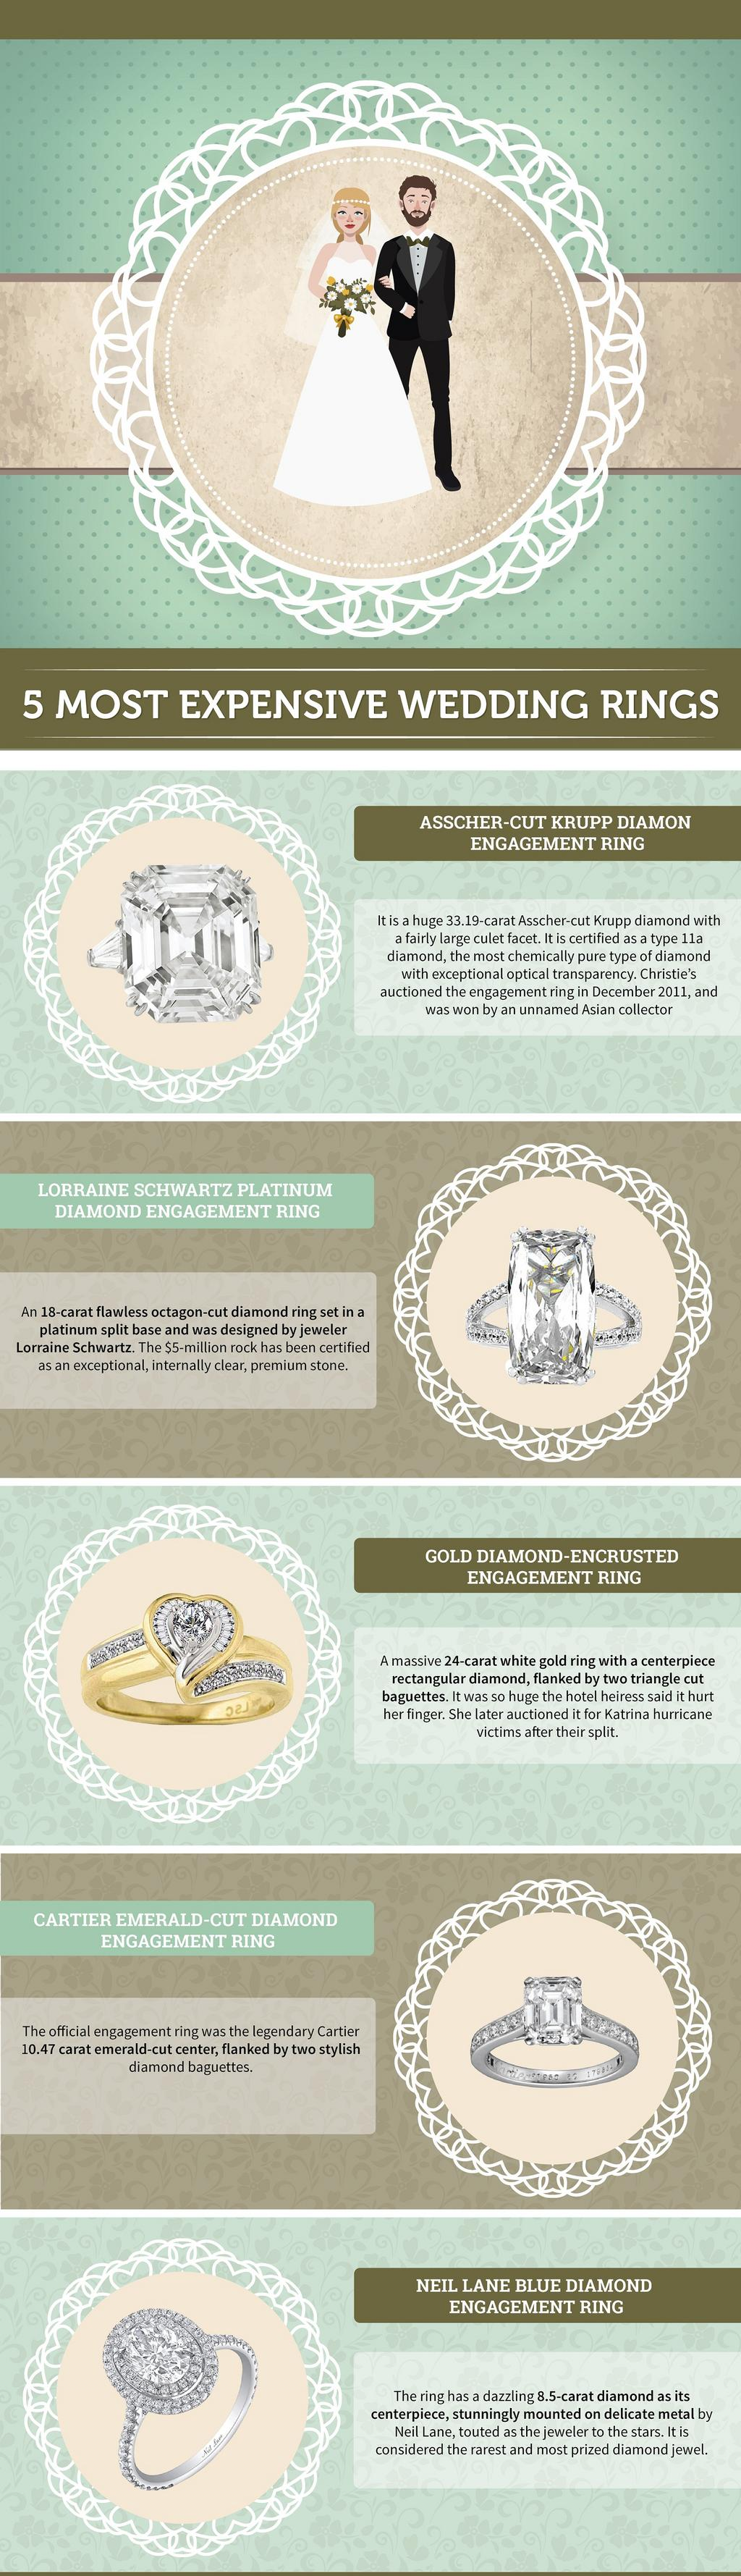 5 Most Expensive Wedding Rings Ever Made-infographic-plaza